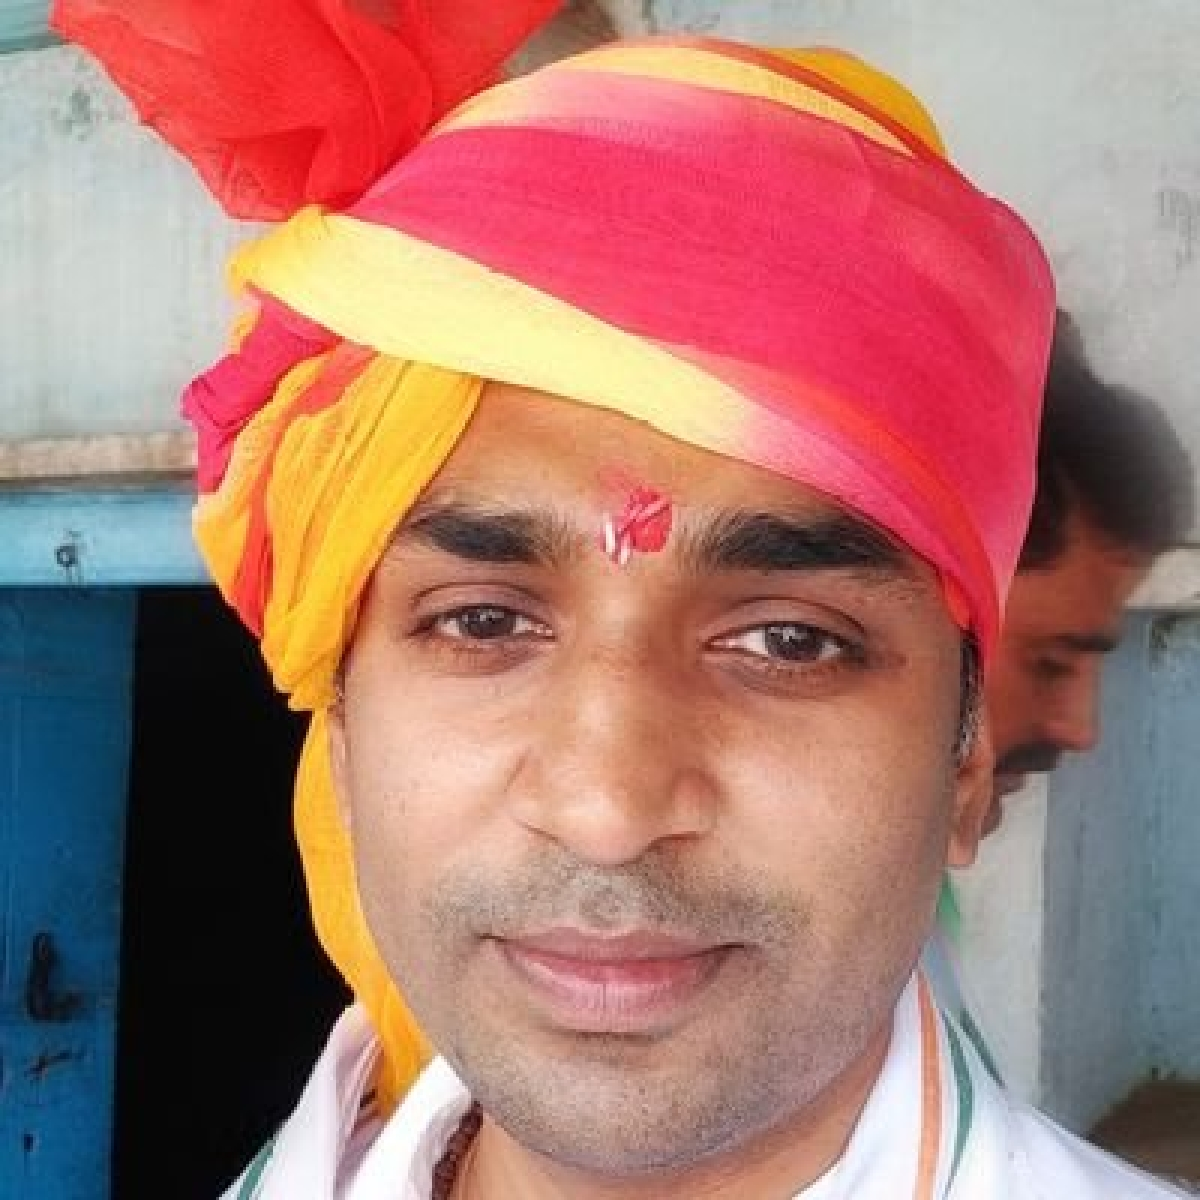 MP Youth Congress president Dr Vikrant Bhuria